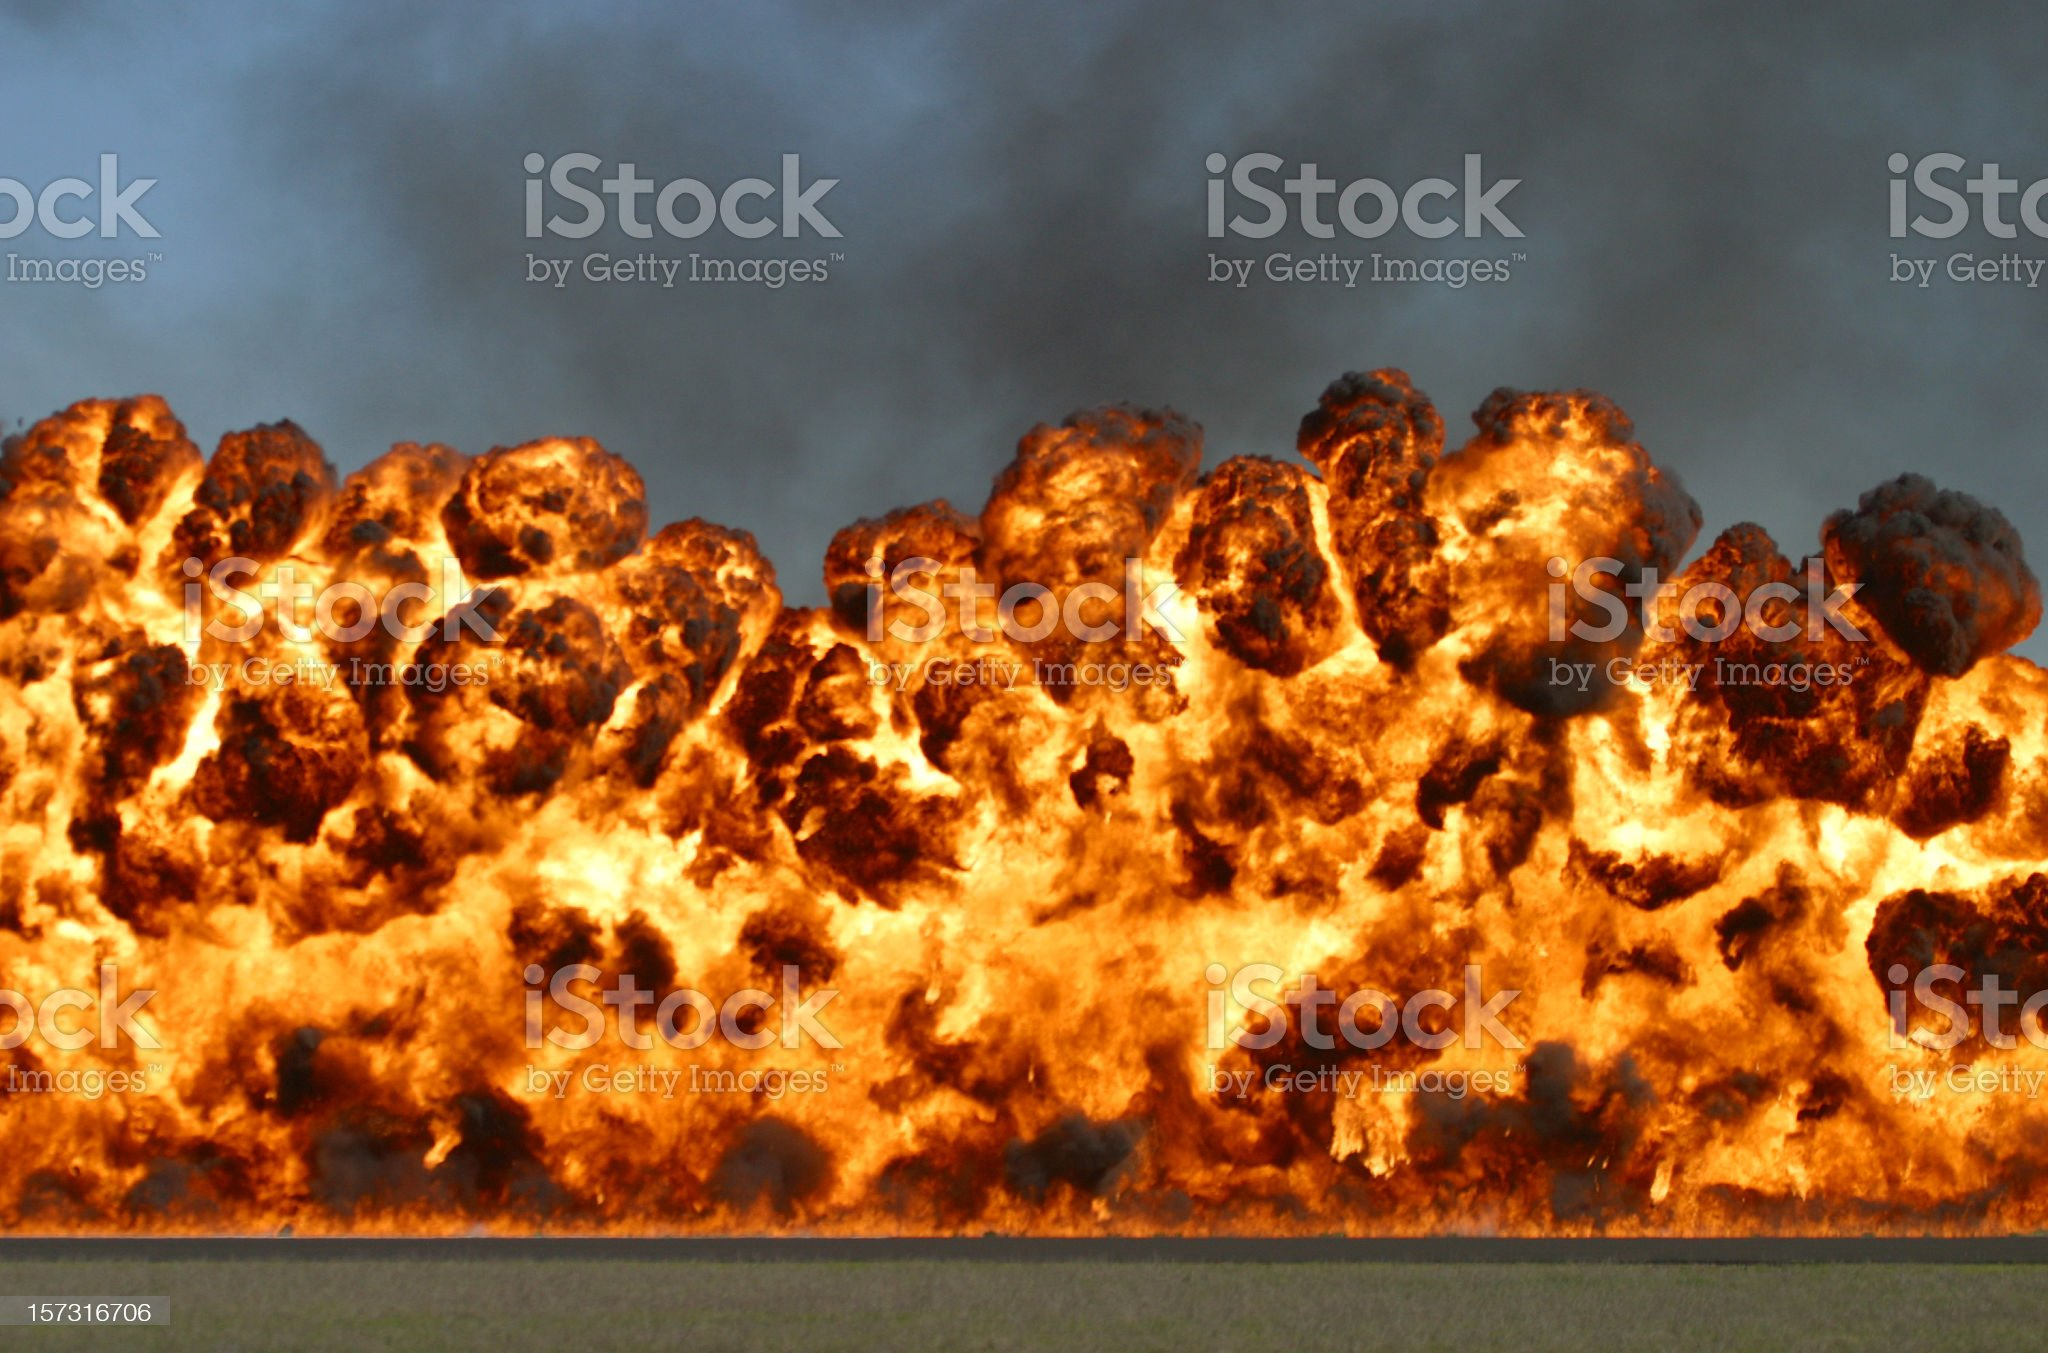 Explosive wall of fire and smoke royalty-free stock photo